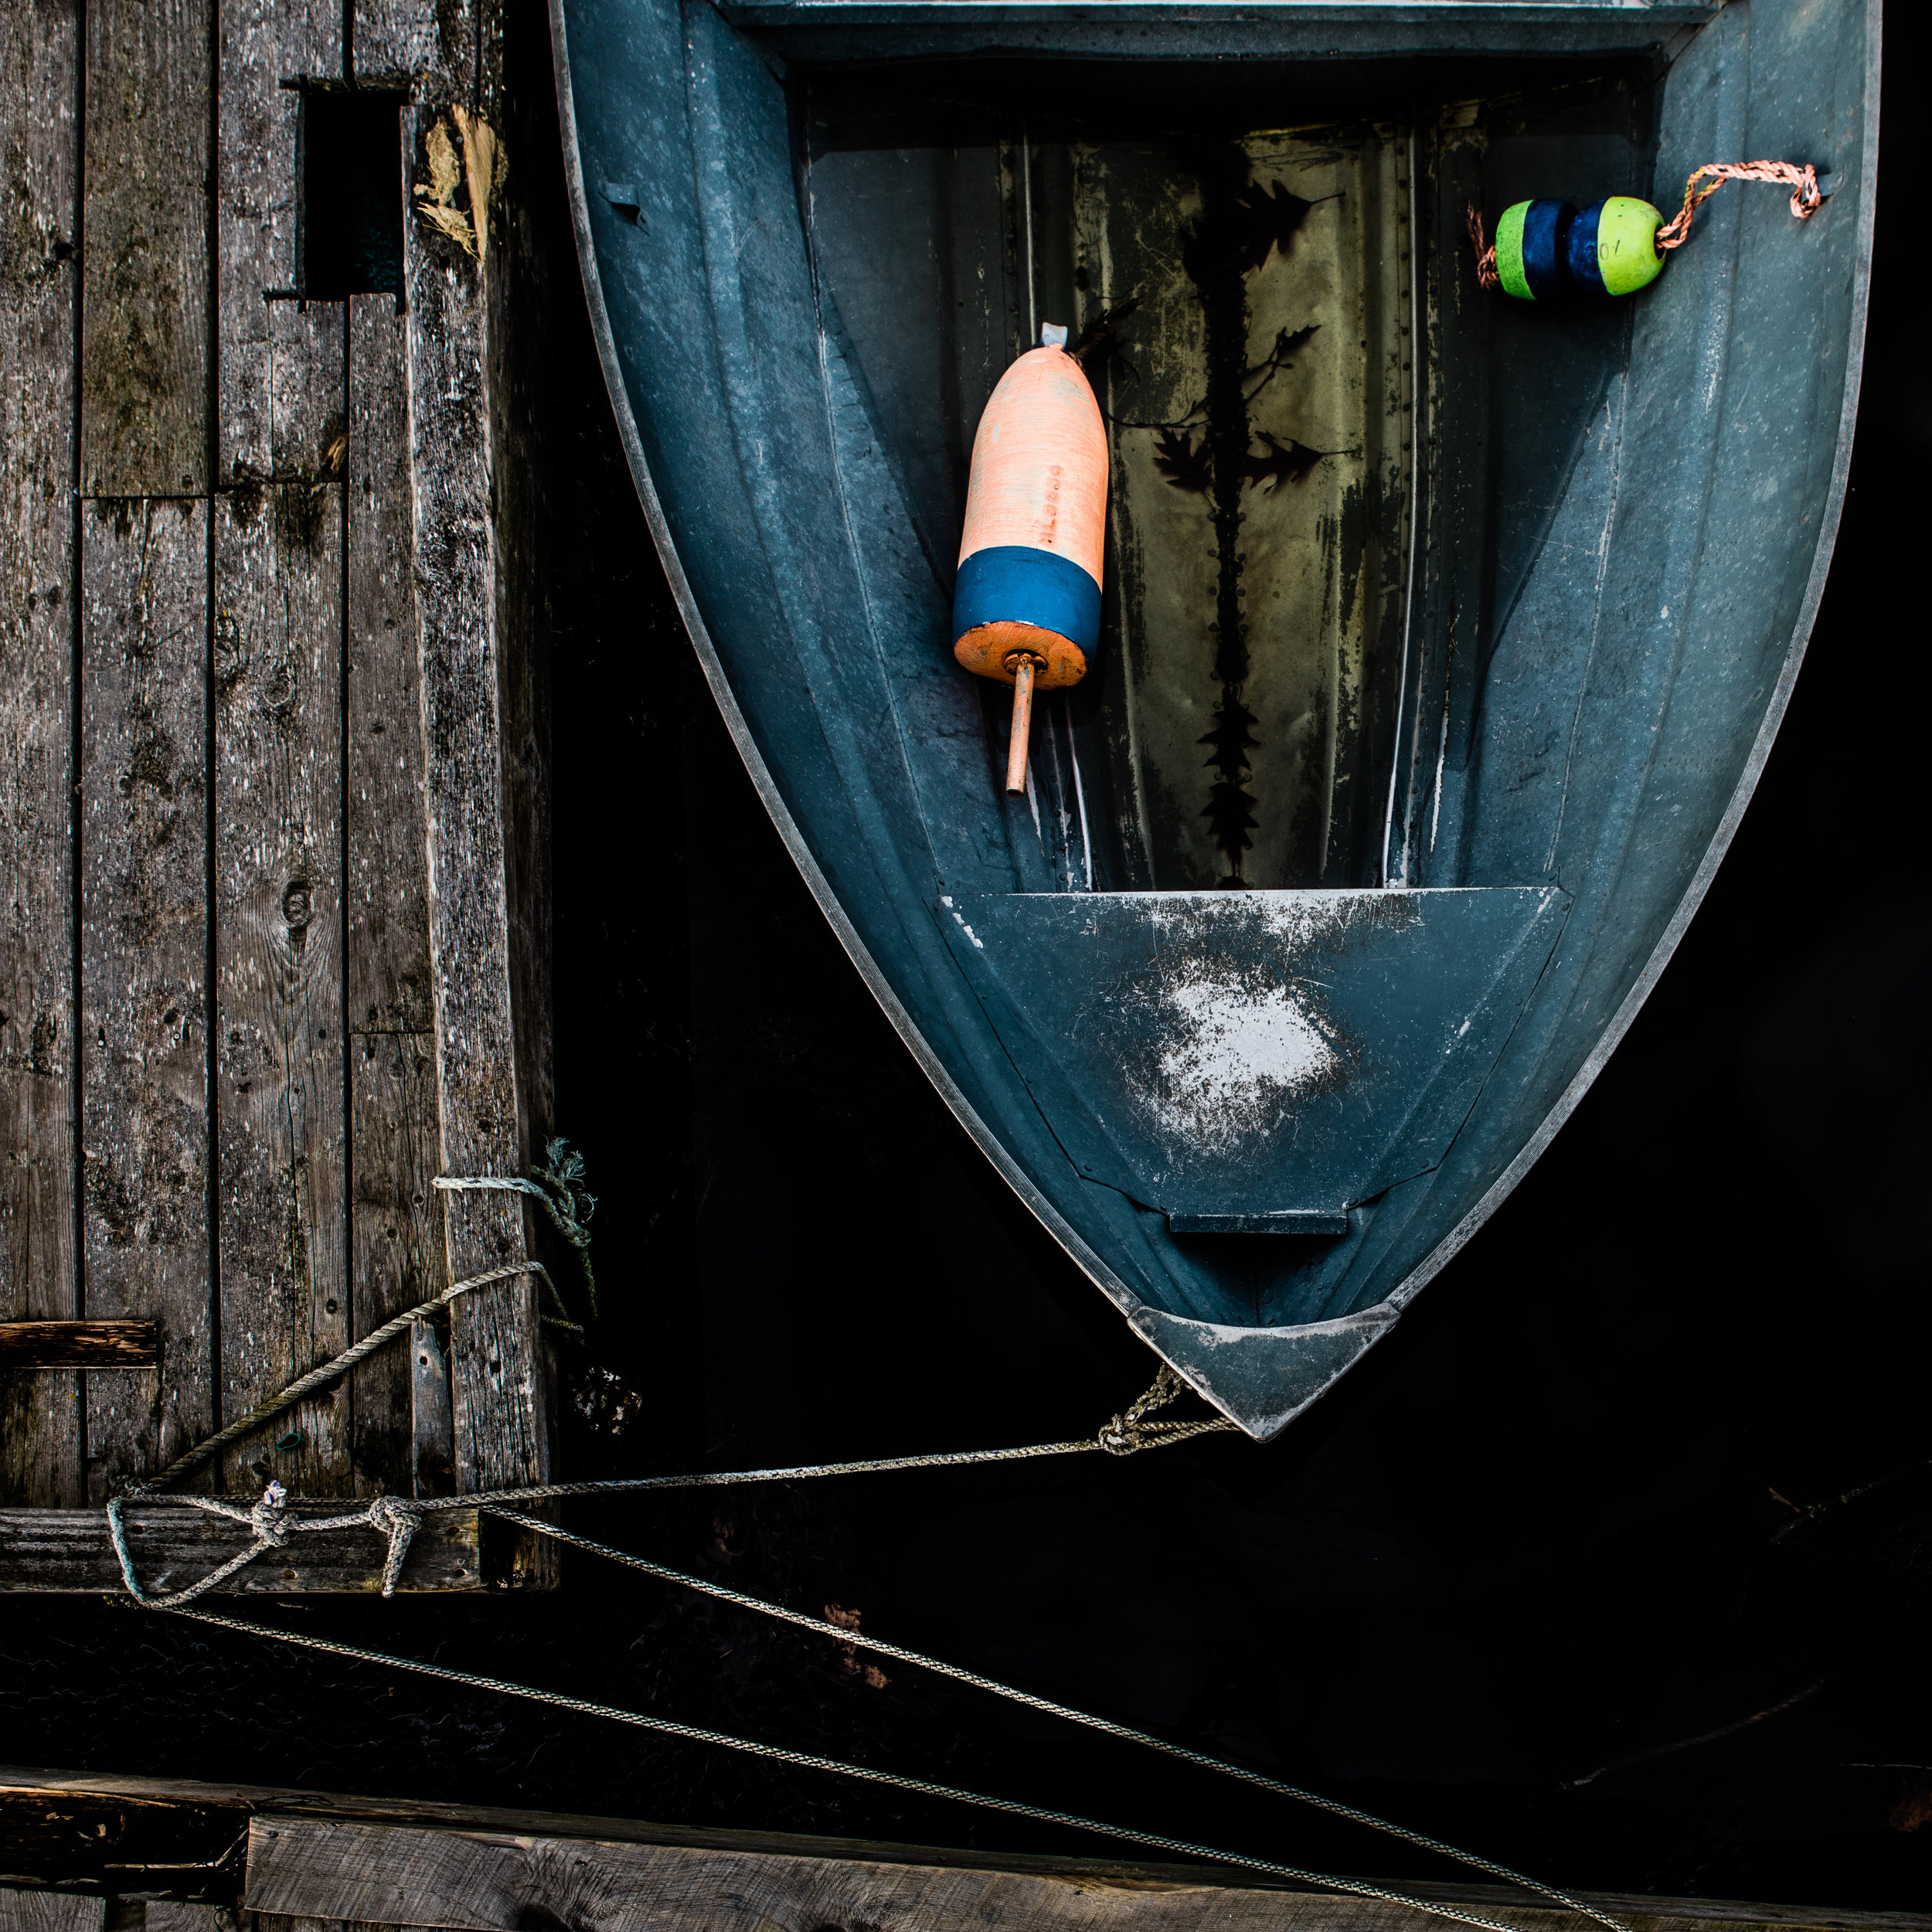 Boat dock buoy Maine photo wall art print © Heidi Kirn Photography085-2.jpg